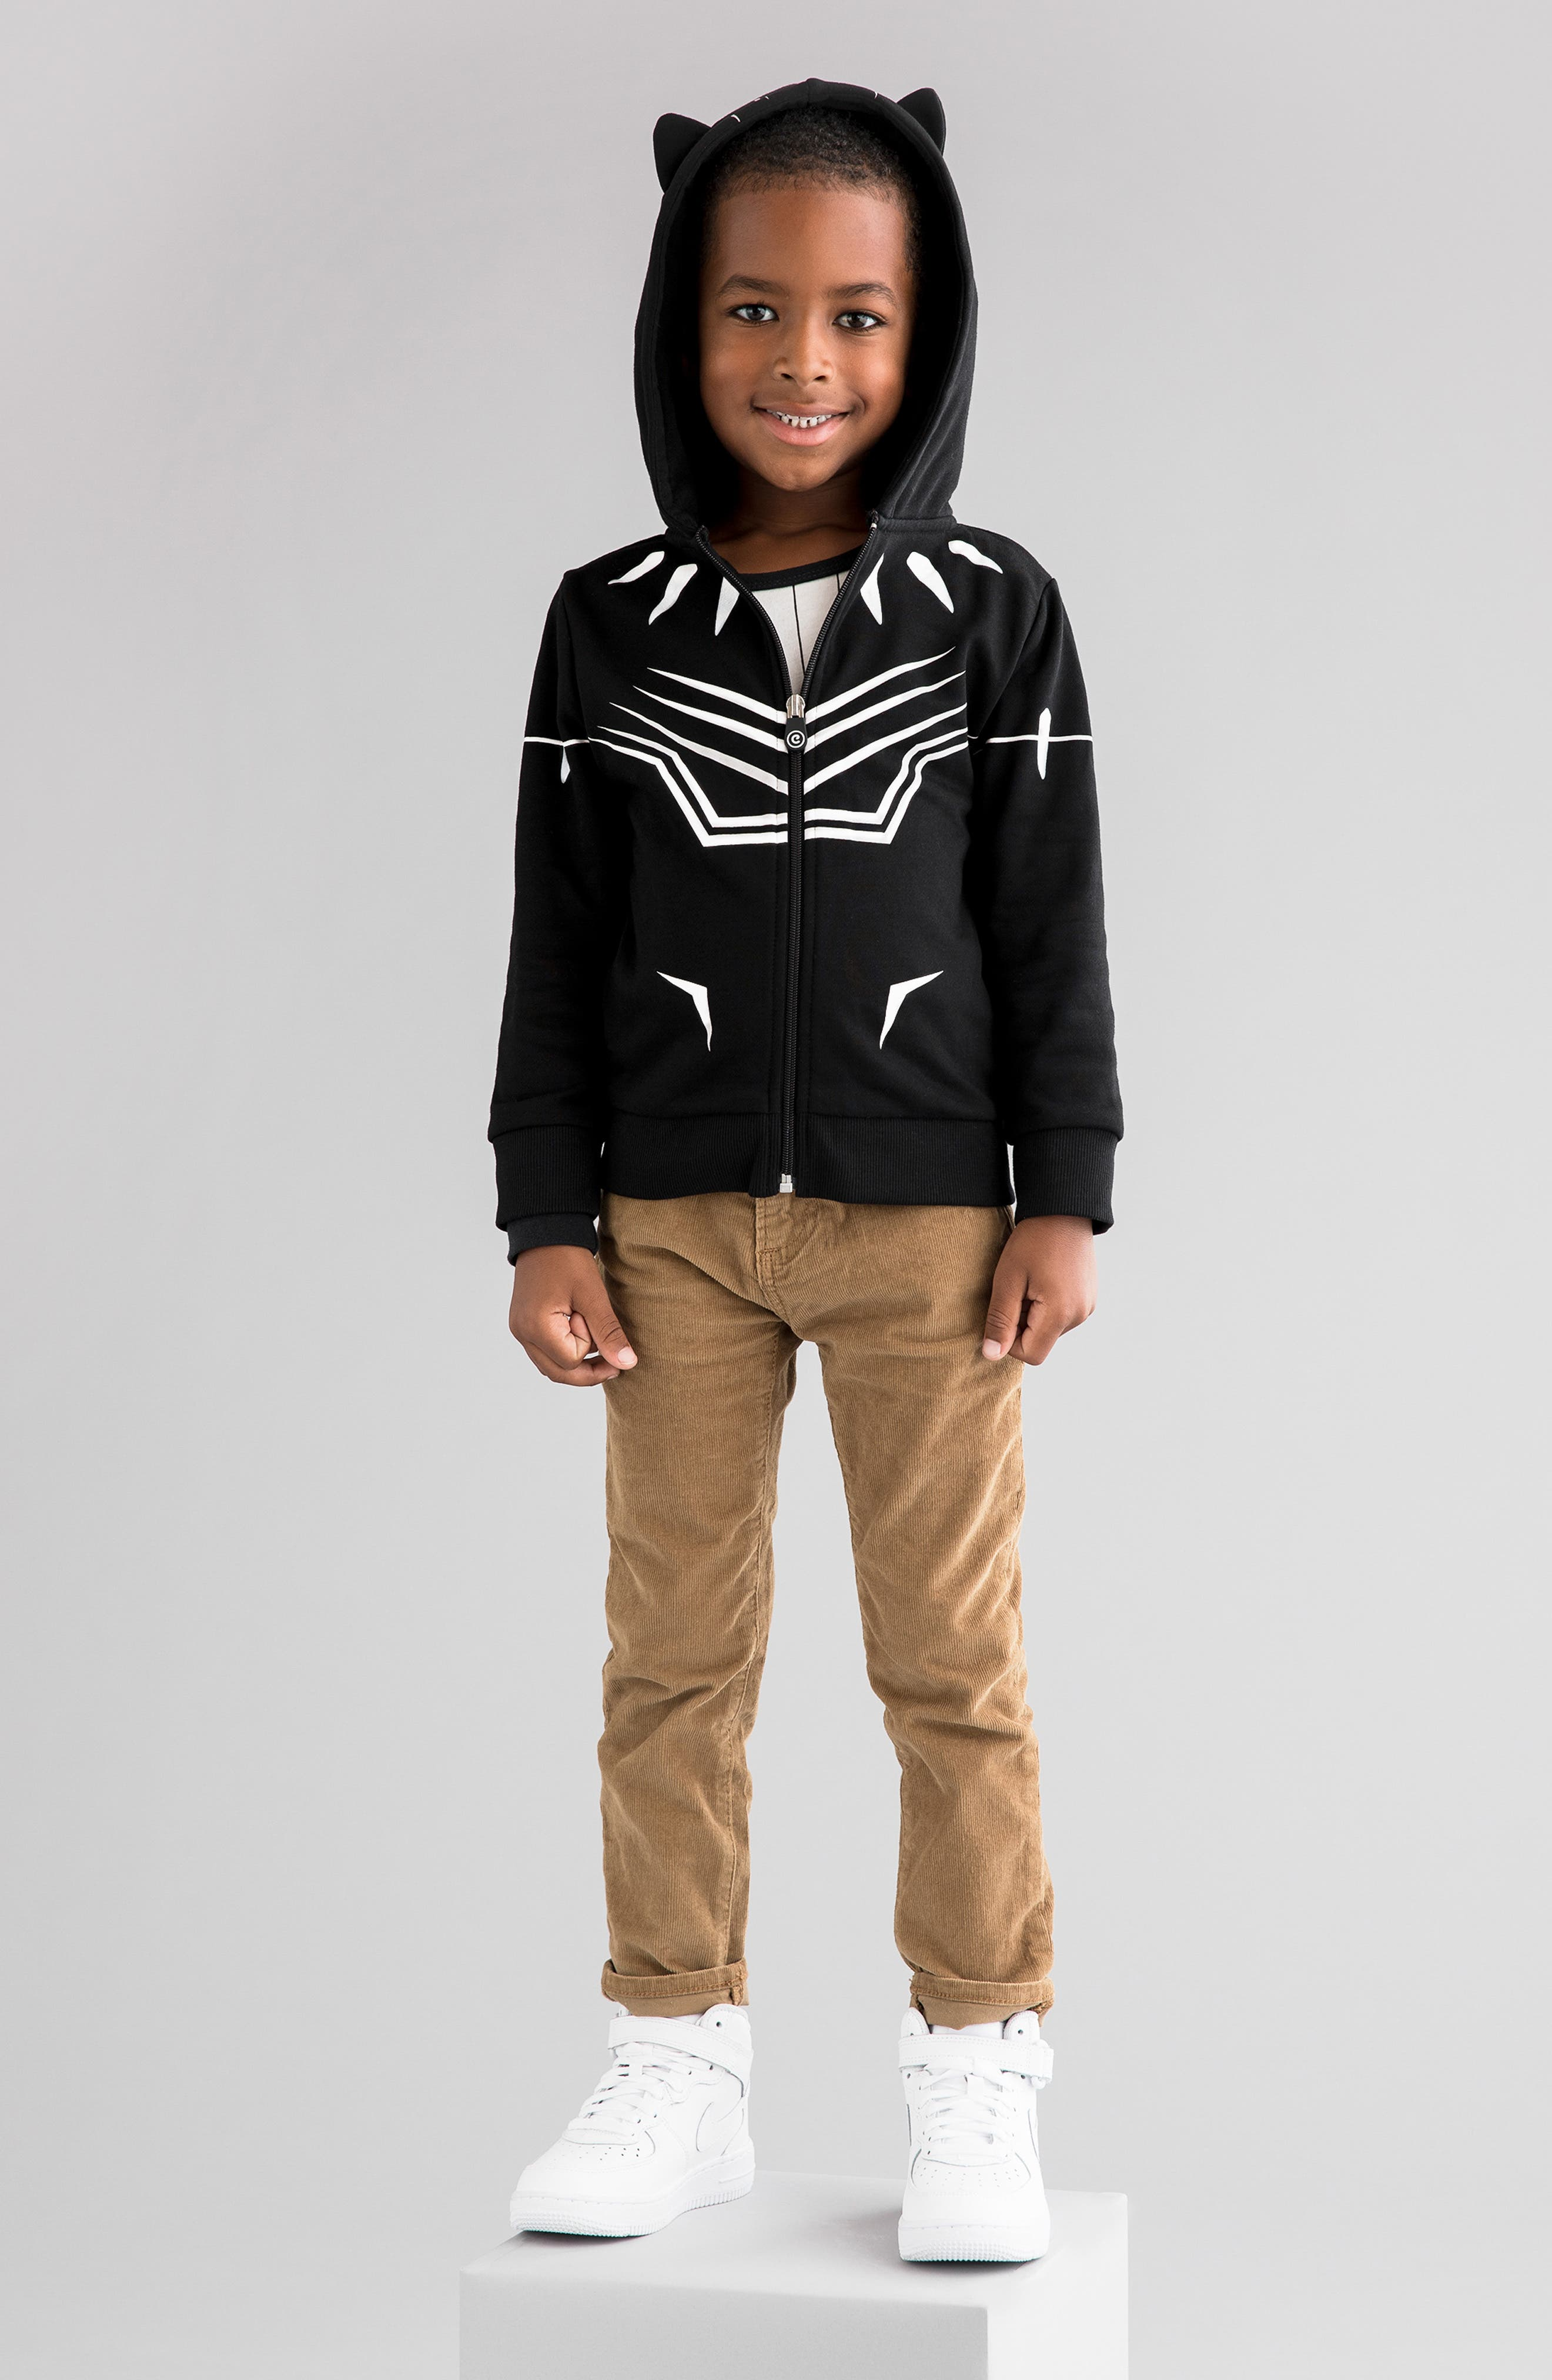 Marvel<sup>®</sup> 2018 Black Panther<sup>®</sup> 2-in-1 Stuffed Animal Hoodie,                             Alternate thumbnail 10, color,                             BLACK